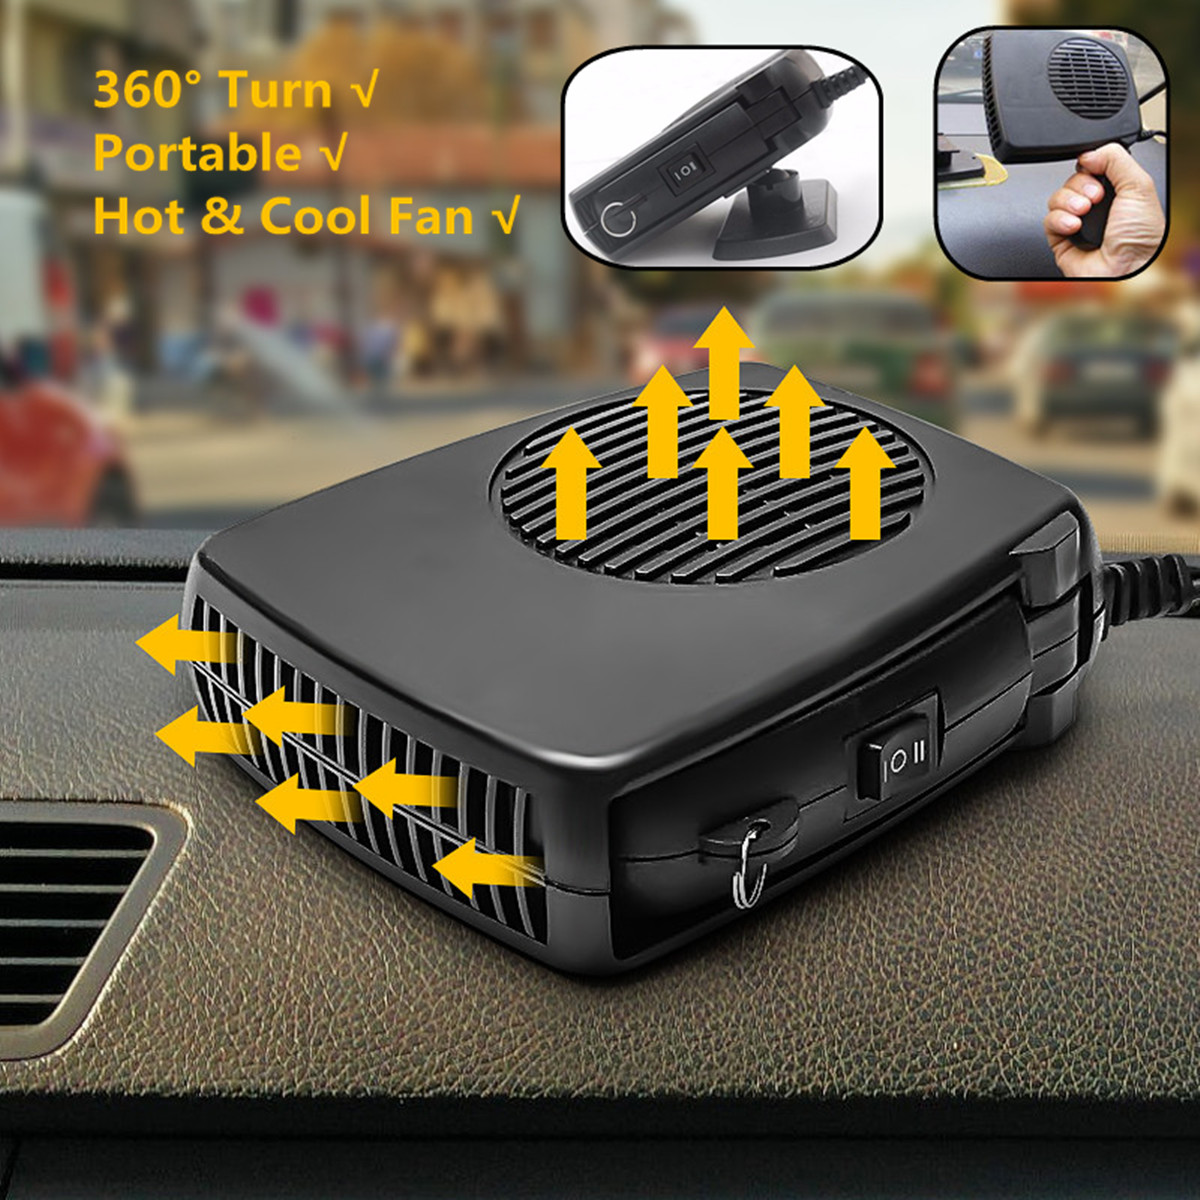 1Pcs 150W 24V Portable Auto Heater Fan Car Heating Cooling Electric Travel Defroster Demister with... by